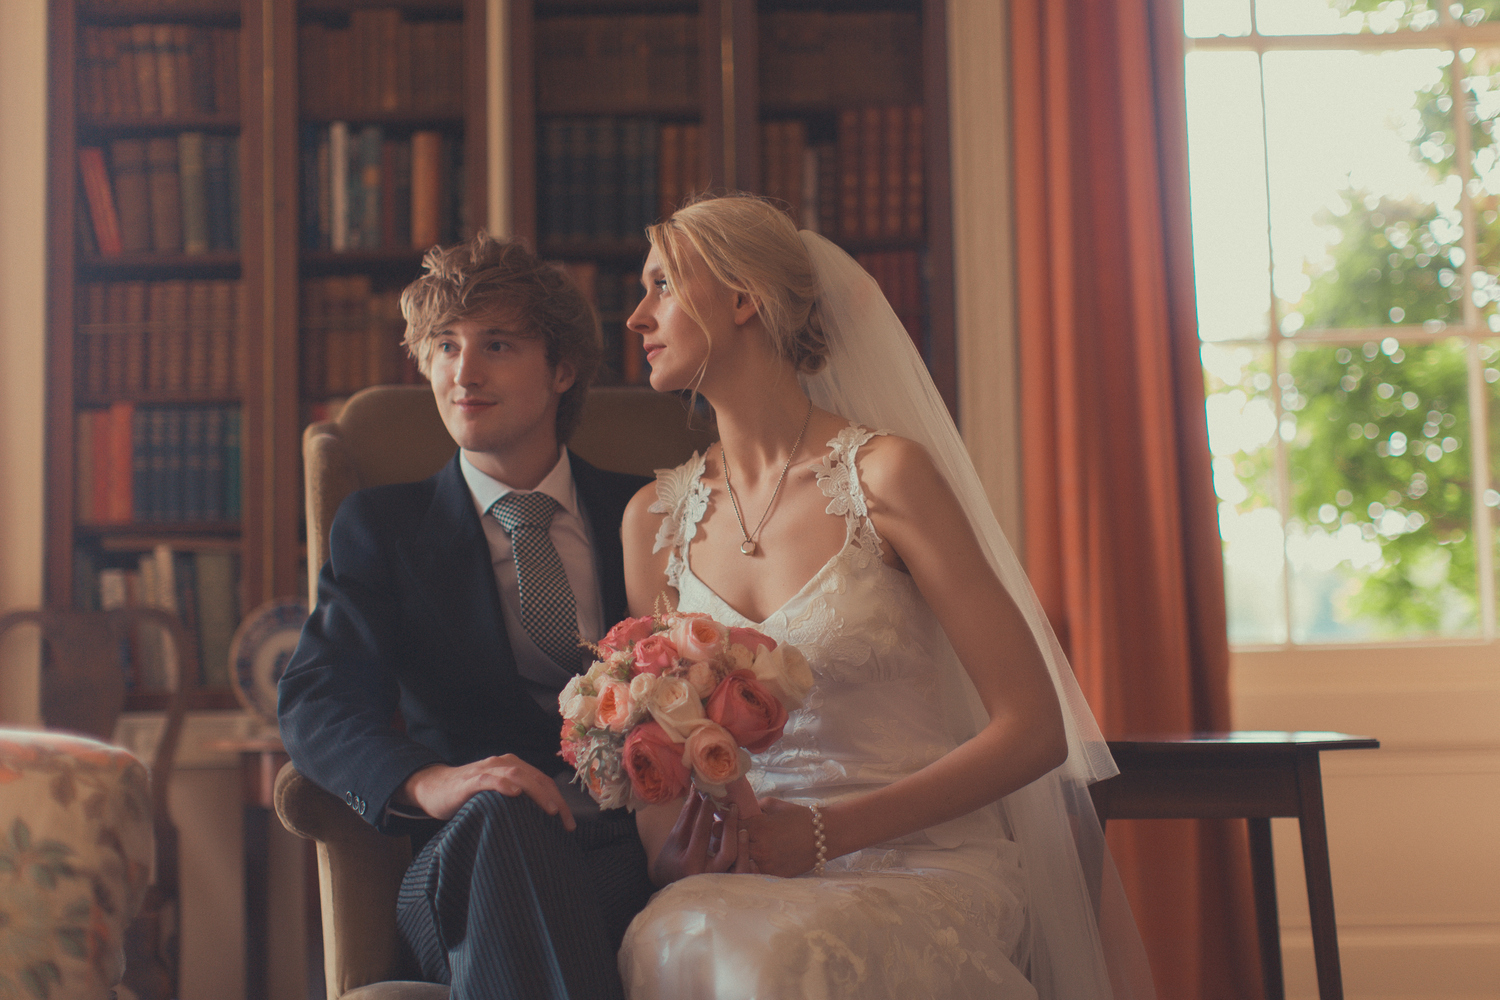 summer wedding with Blush & coral flowers at Courteenhall Northamptonshire